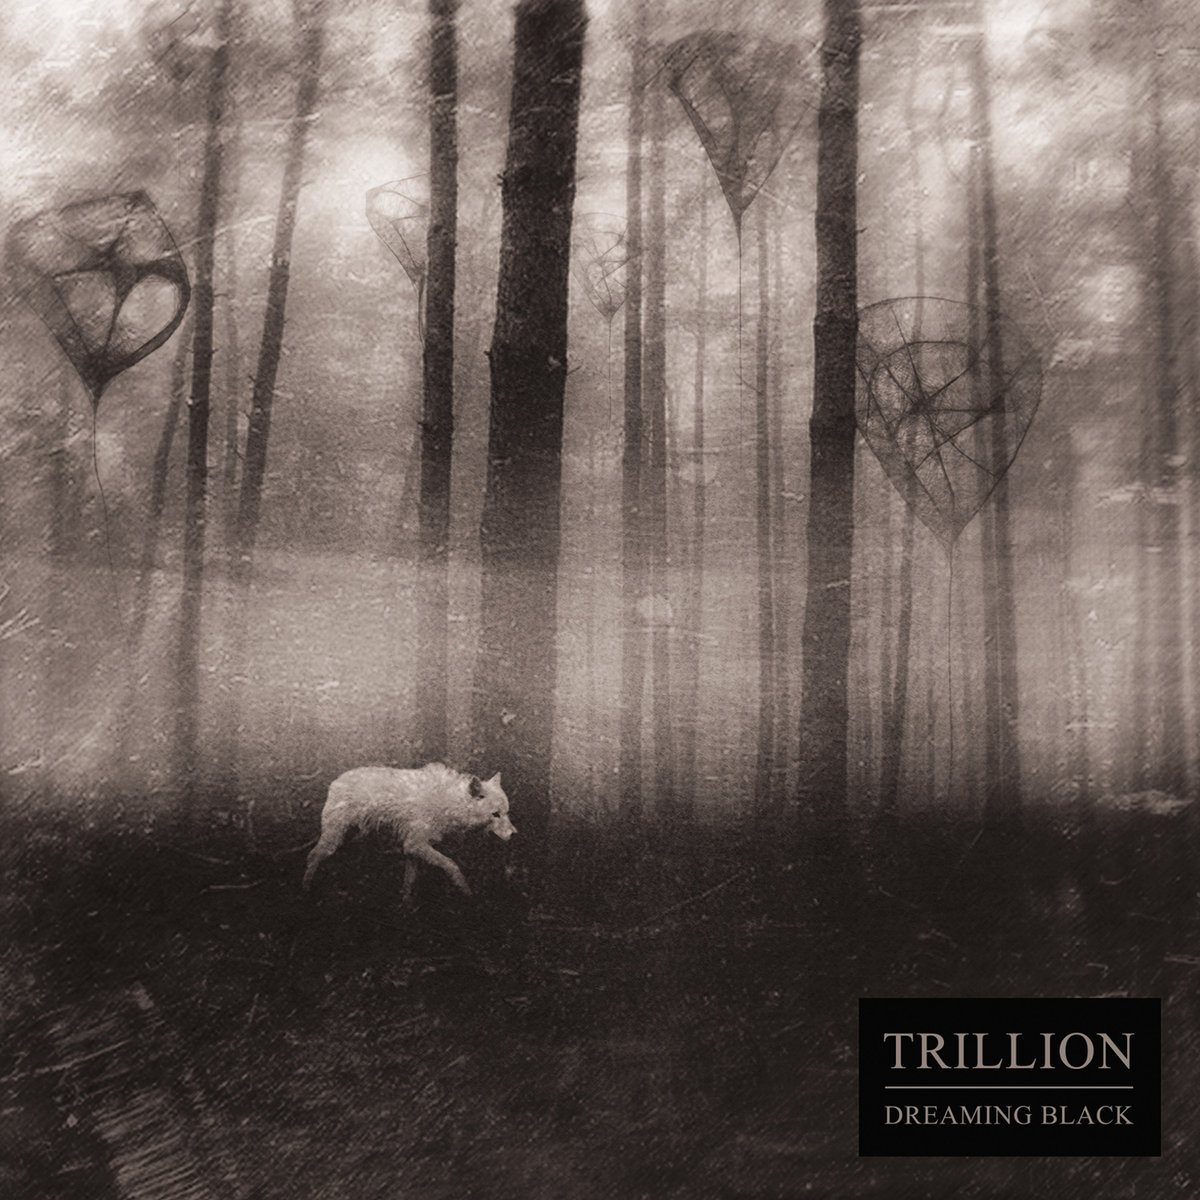 trillion - dreaming black